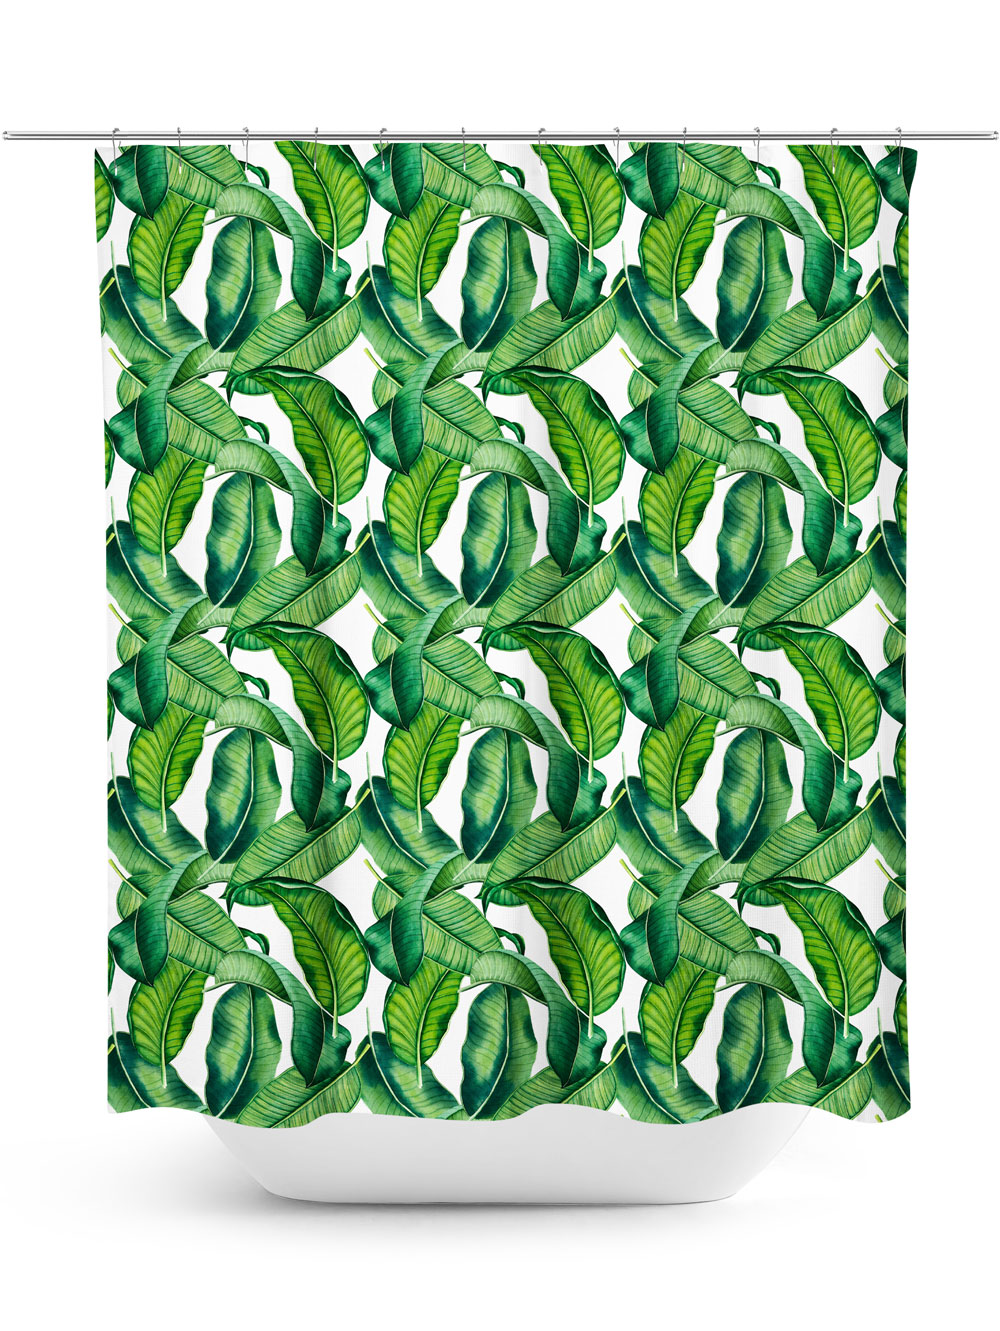 Falling Palm Fronds Shower Curtain